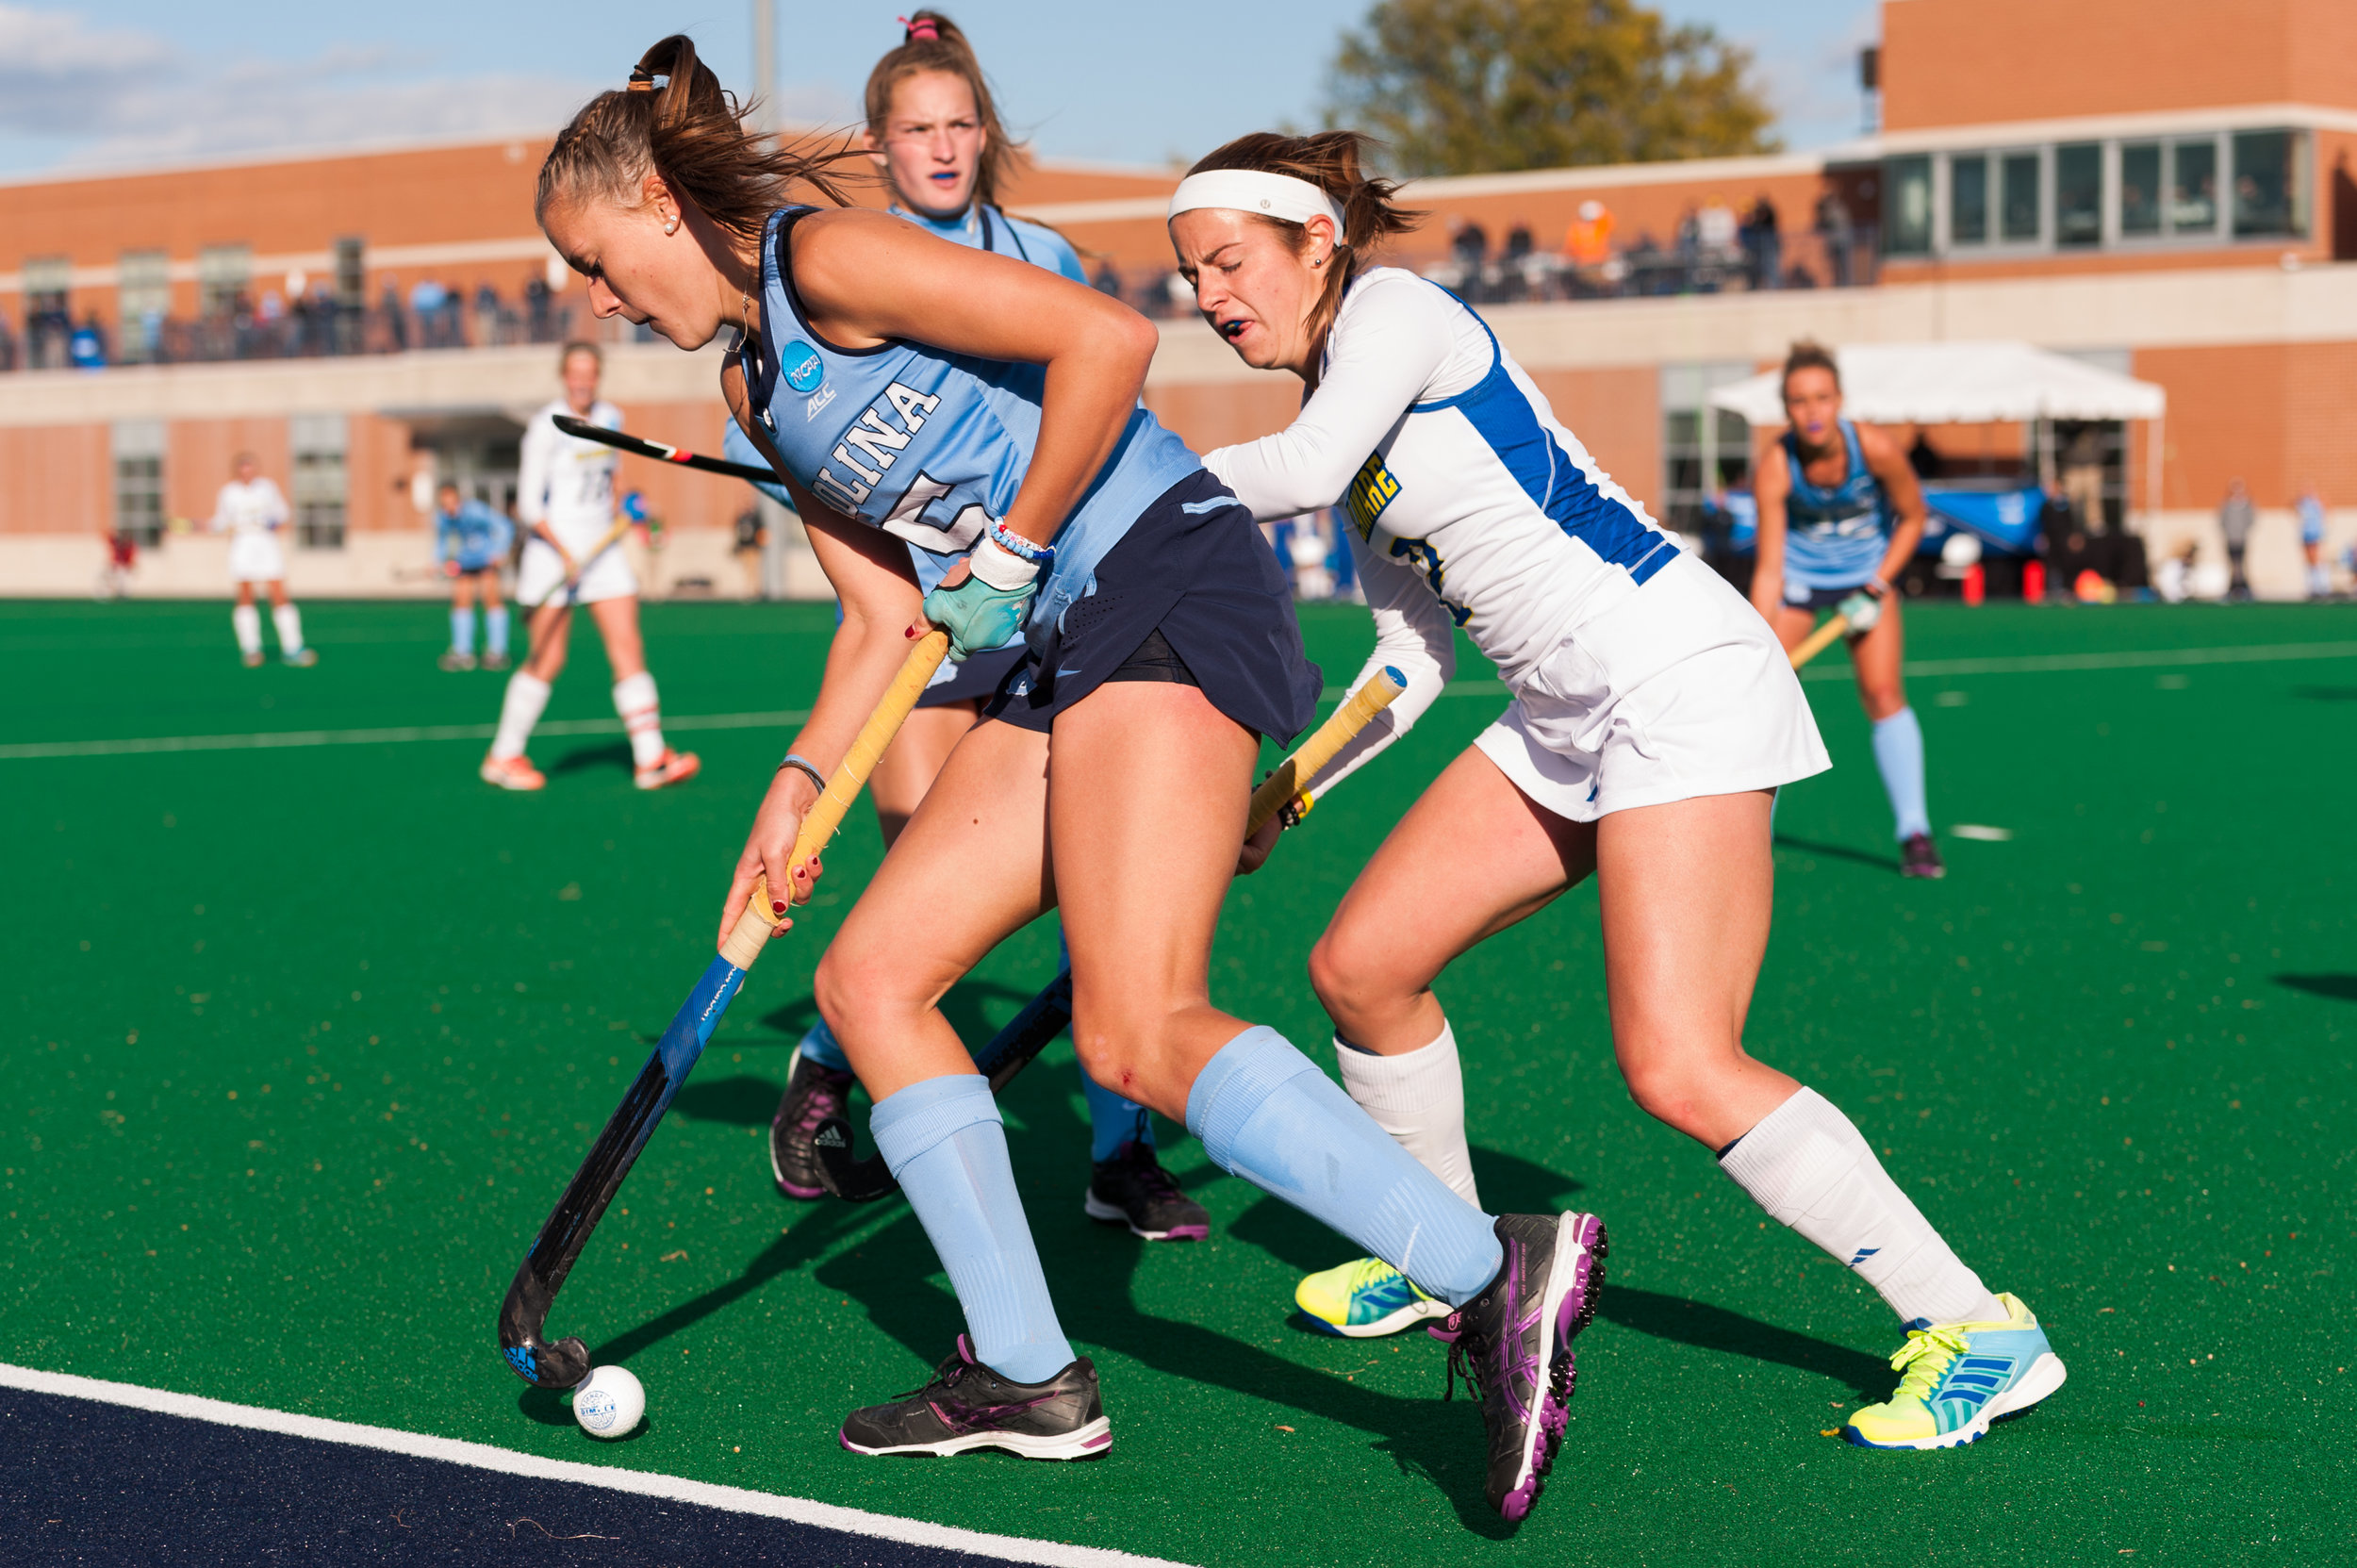 North Carolina forward Malin Evert (15) works to keep the ball inbounds against the Delaware Blue Hens during the 2016 NCAA DI National Championship at the L.R. Hill Sports Complex in Norfolk, VA. Delaware defeated North Carolina 3-2.